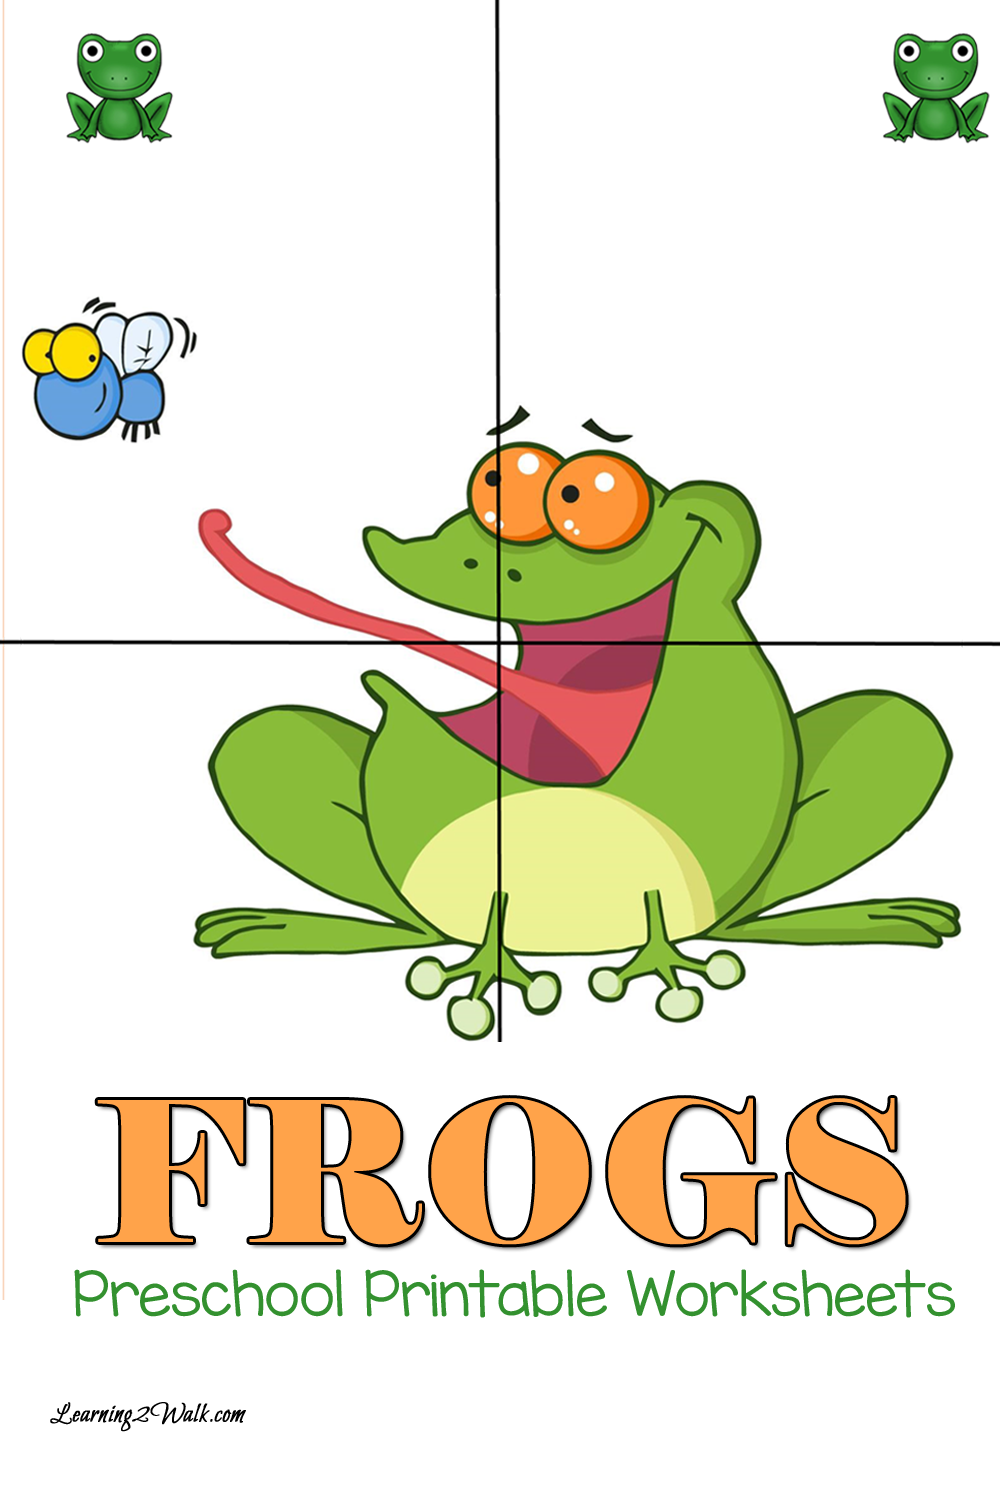 Free Preschool Printable Worksheets: Frog | Frogs preschool ...